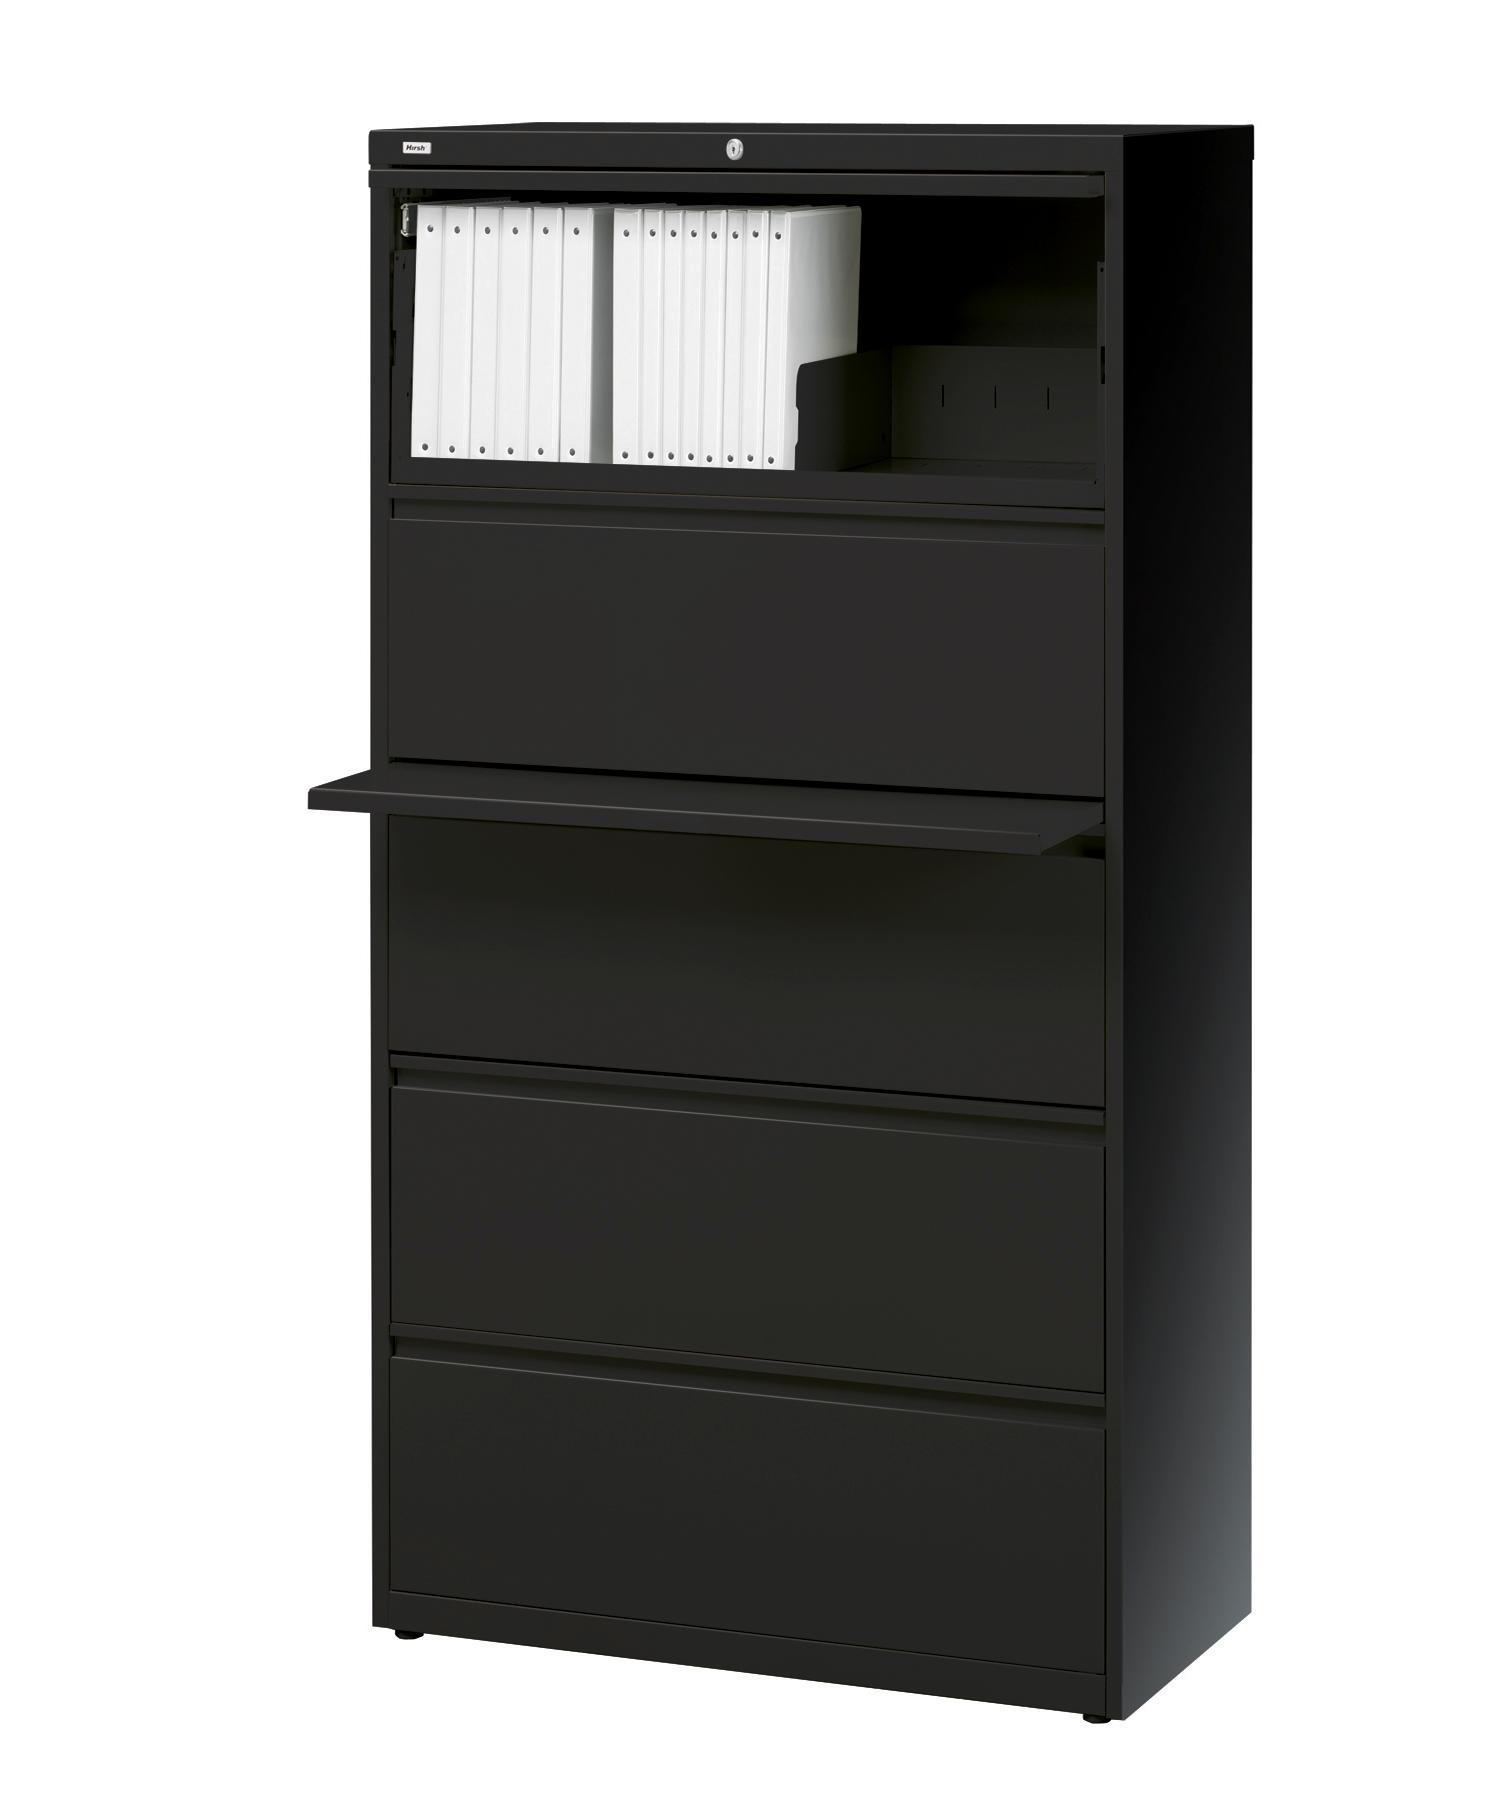 Hirsh HL10000 Series 5-drawer Commercial Lateral File Cabinet